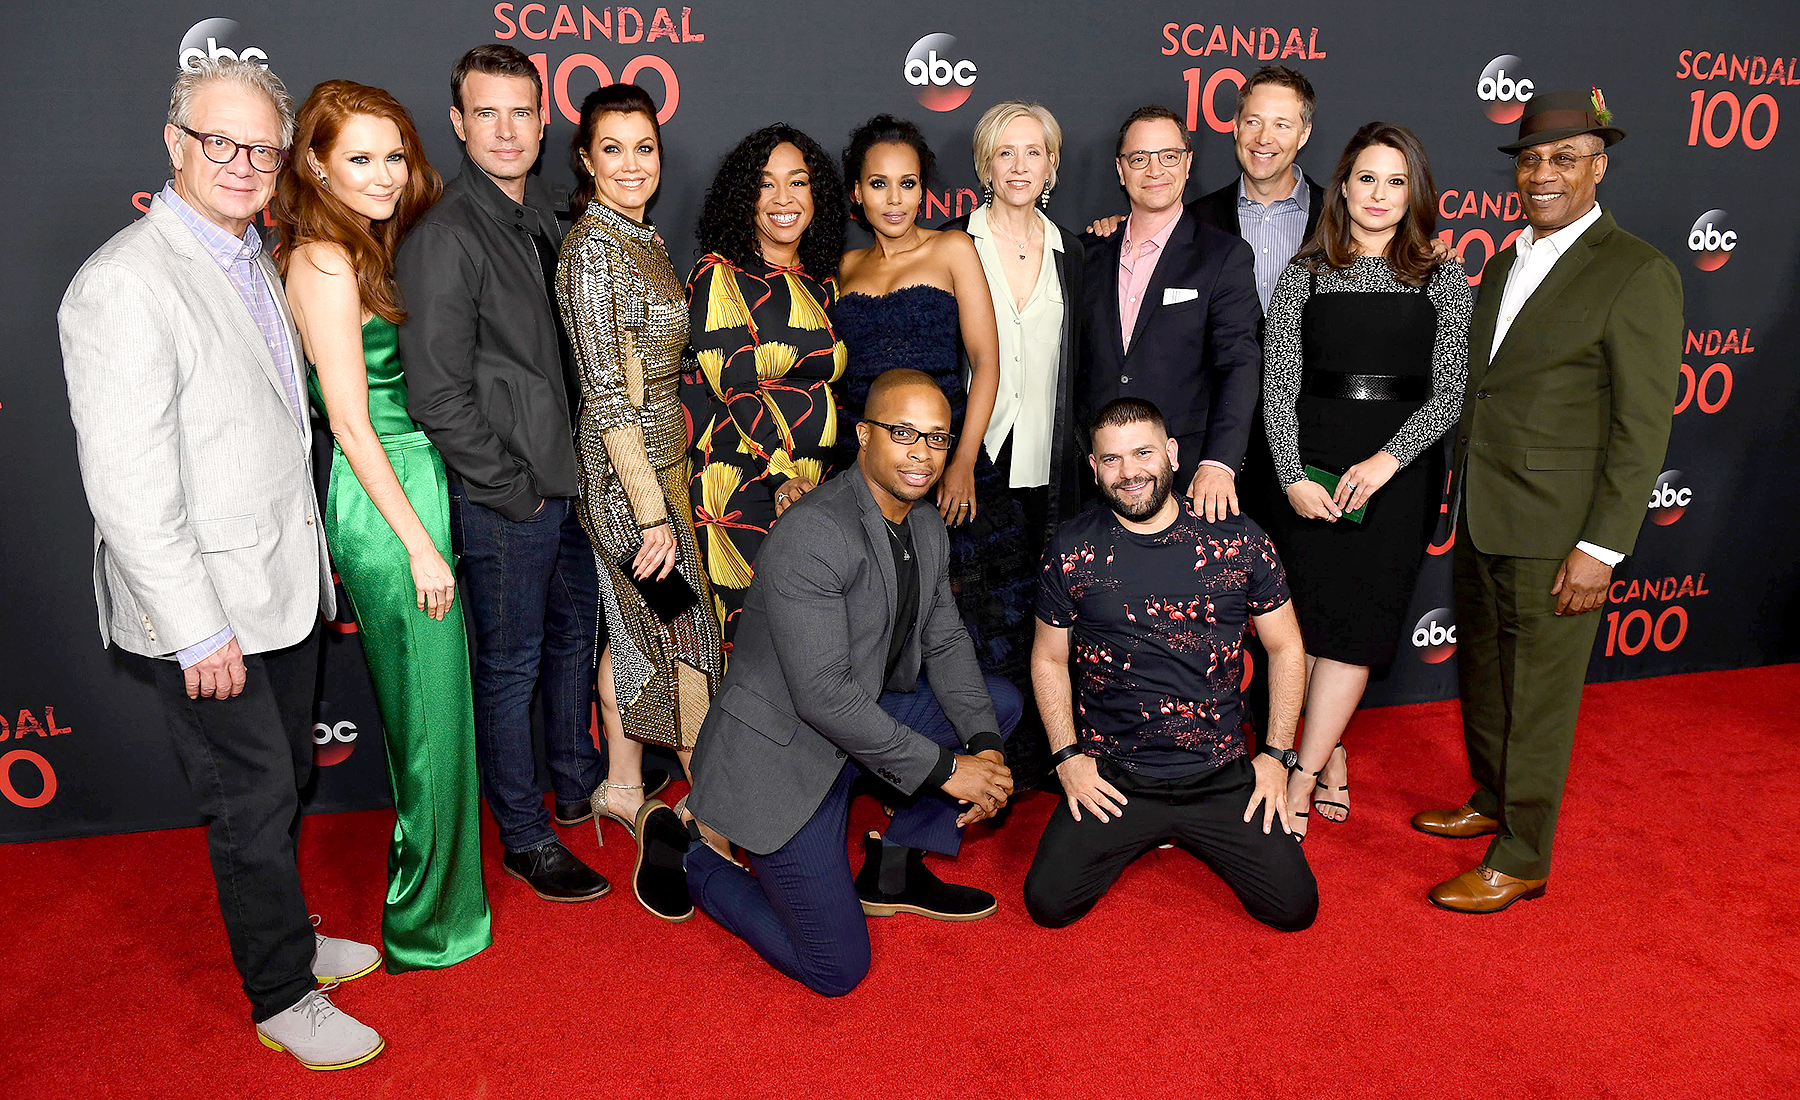 The cast of Scandal attended a 100th episode celebration in West Hollywood, CA.